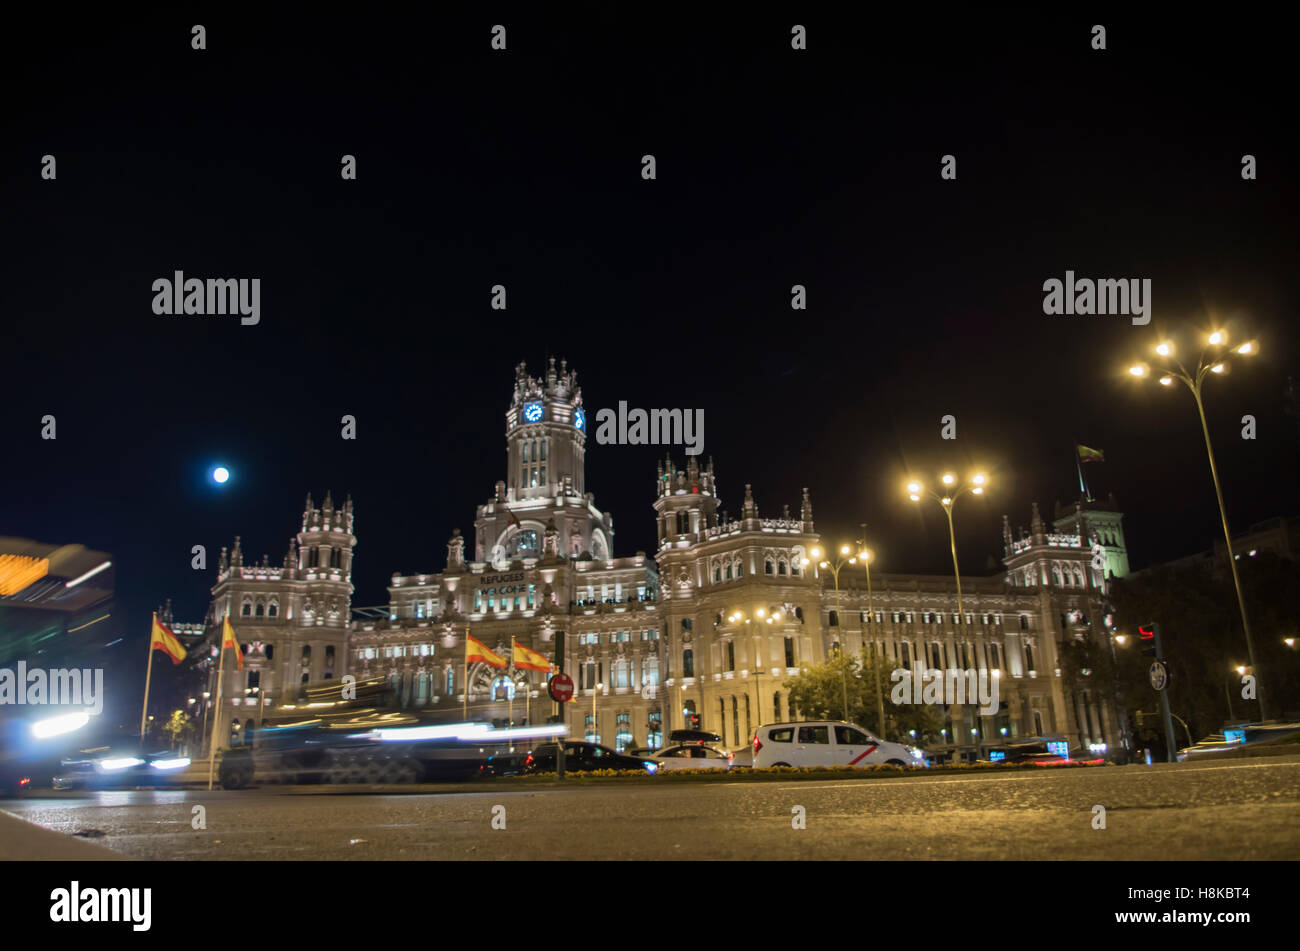 The largest moon in the last 70 years captured over one of the main touristic sports of Madrid, the Square of Cibeles. Stock Photo